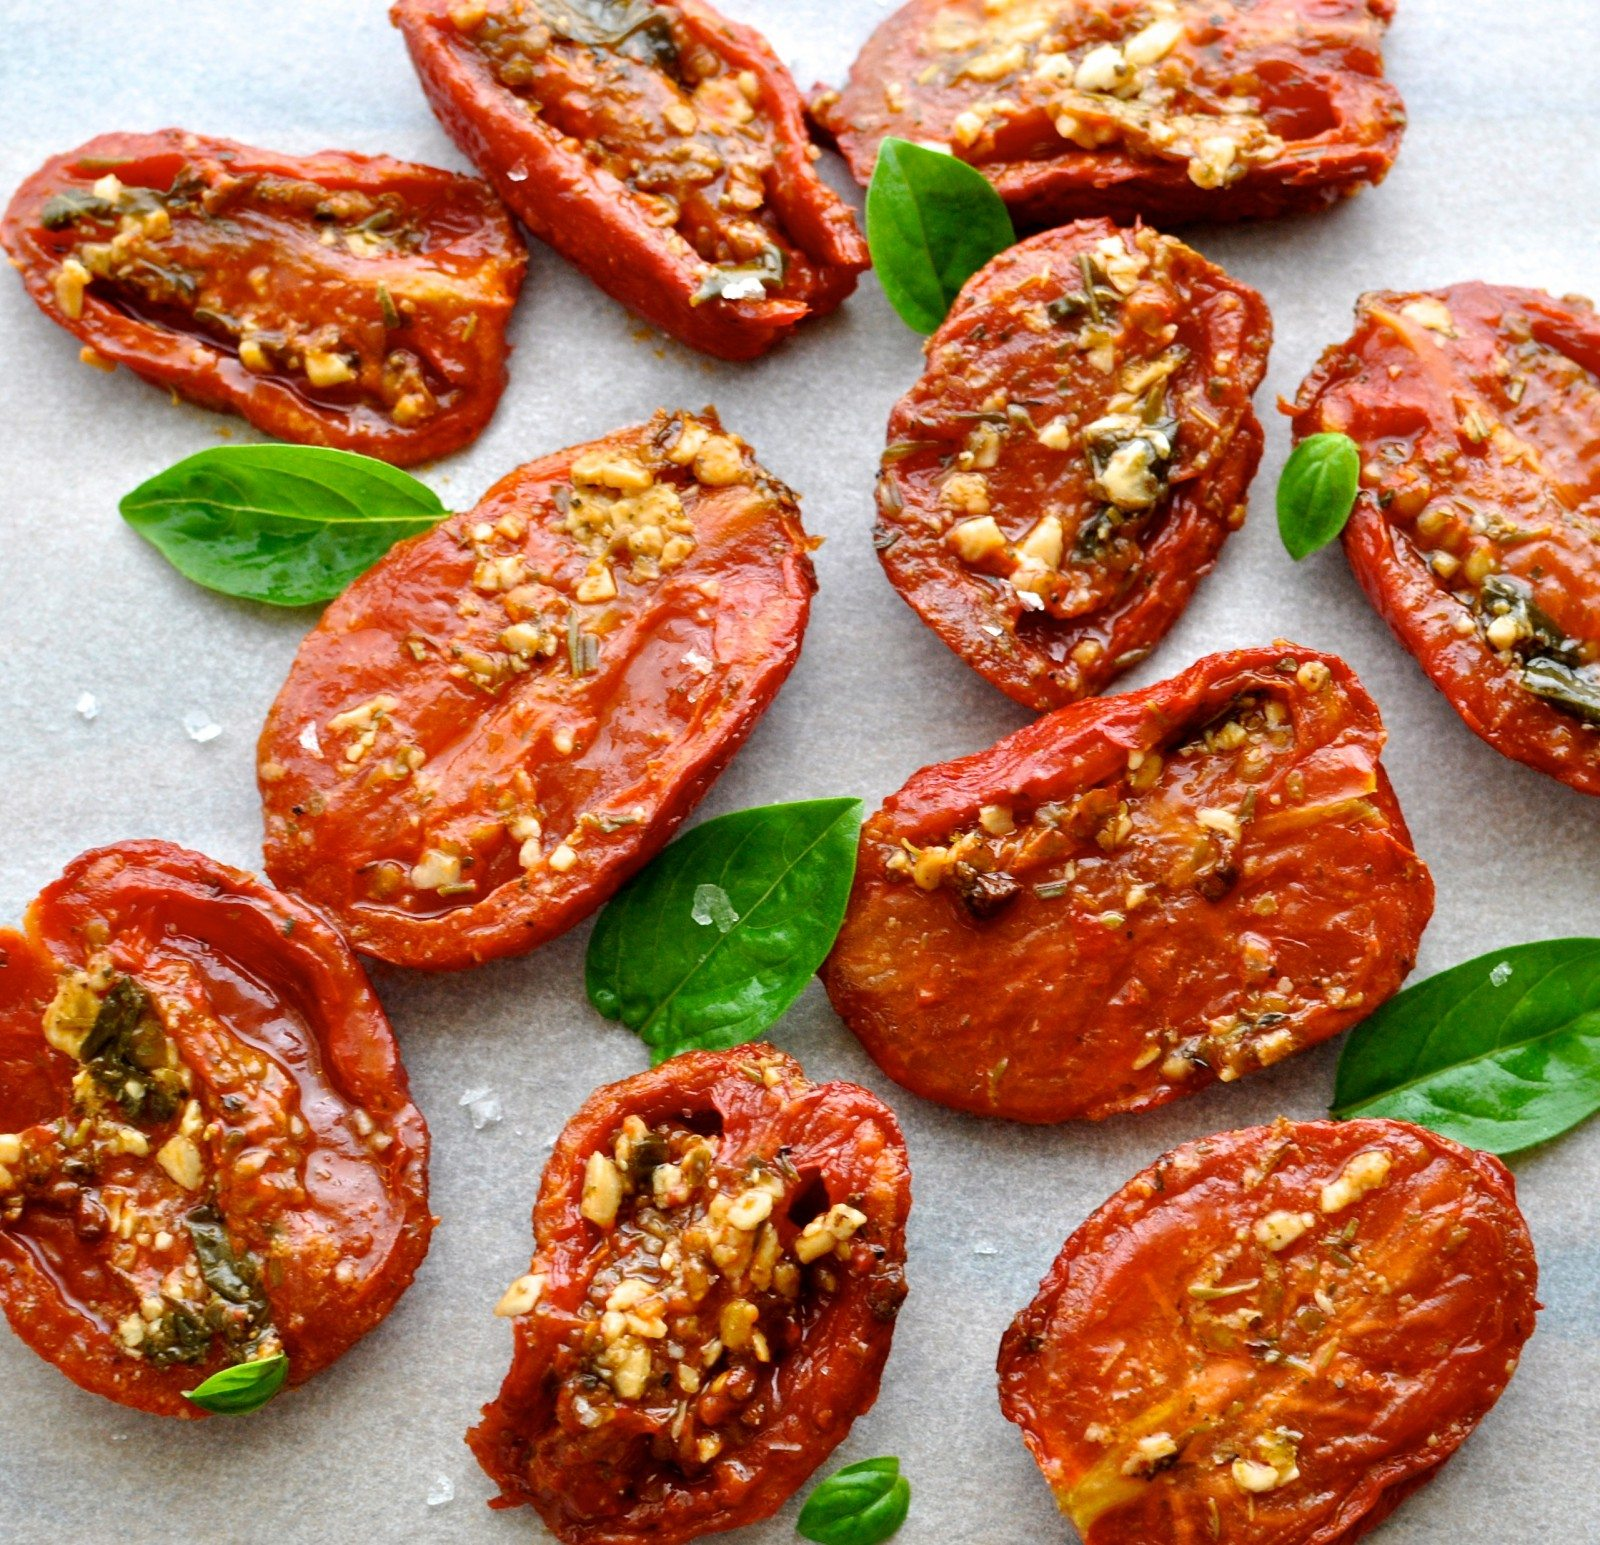 Chris's Italian slow-roasted tomatoes